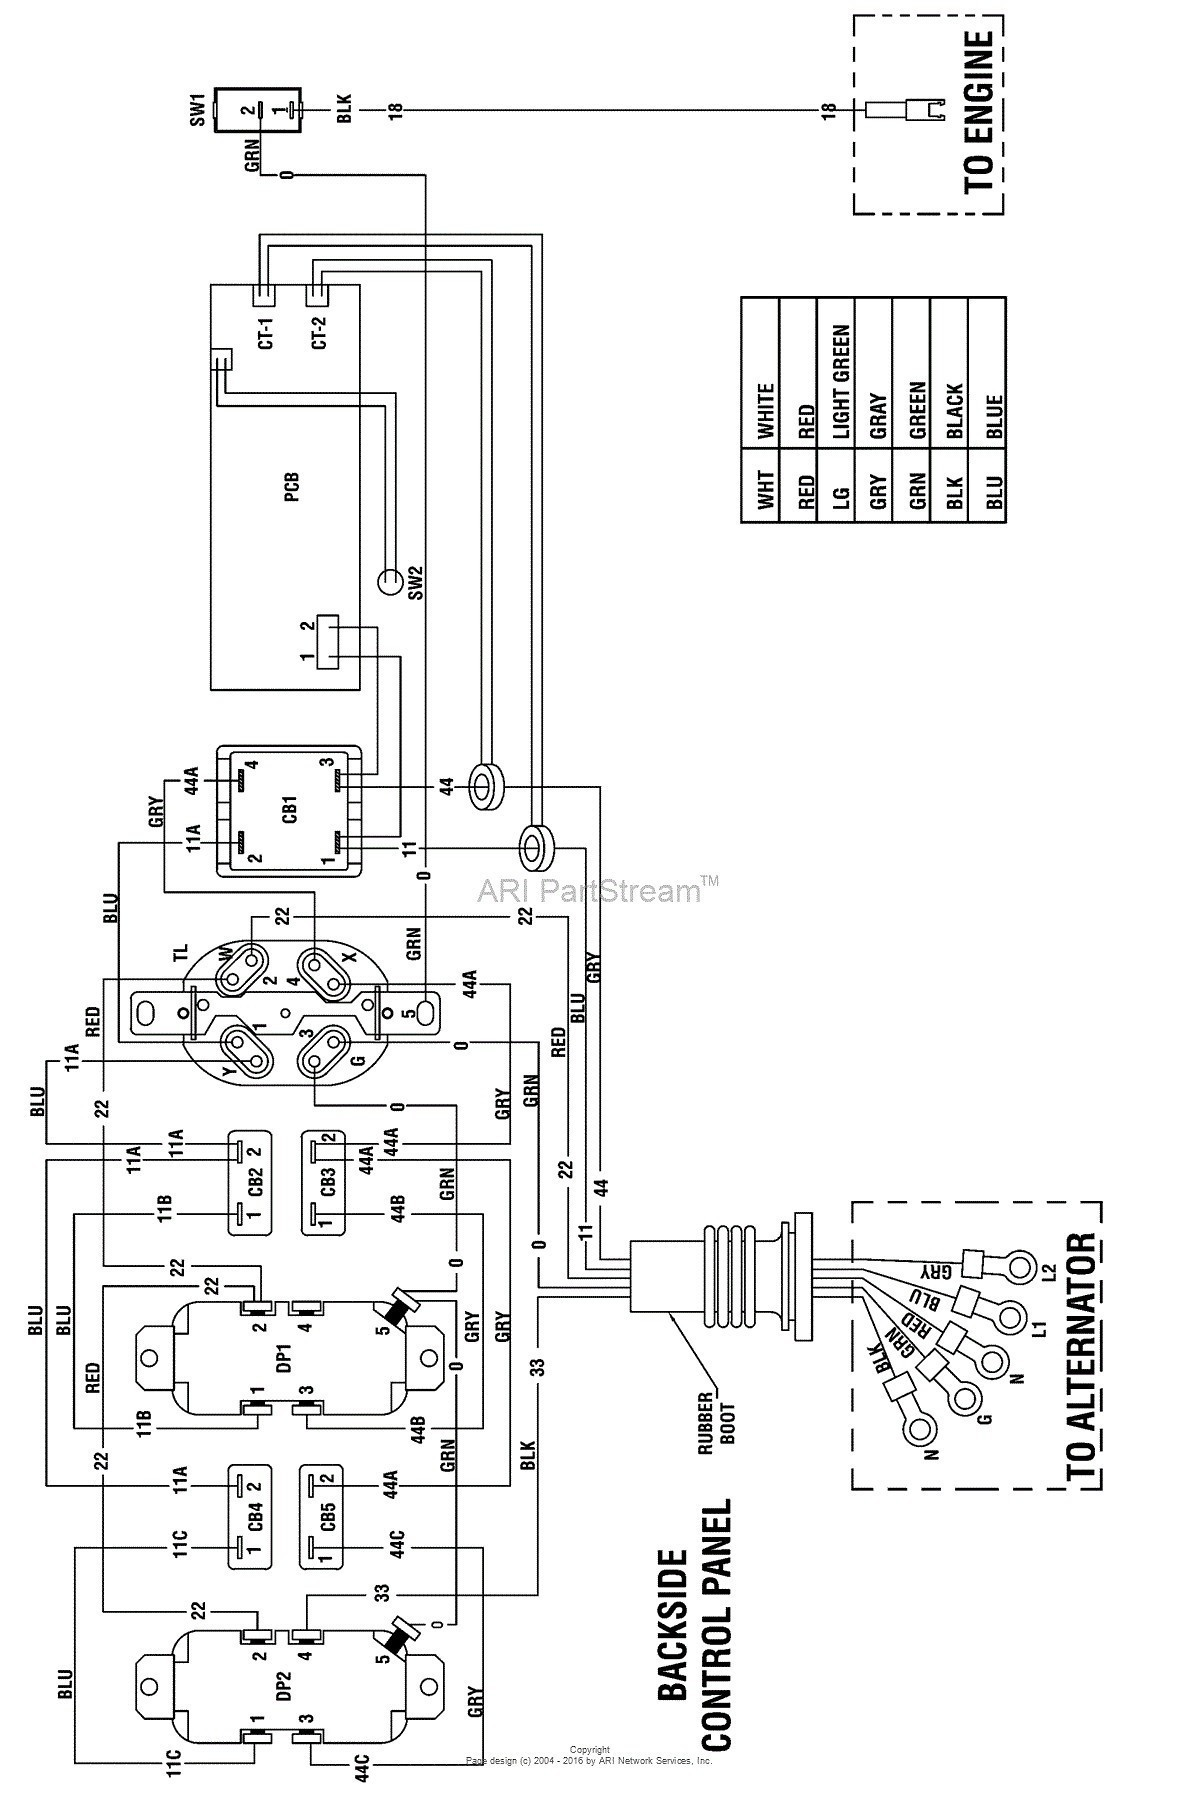 briggs and stratton charging system wiring diagram new briggs and stratton 18 5 wiring wire center e280a2 of briggs and stratton charging system wiring diagram